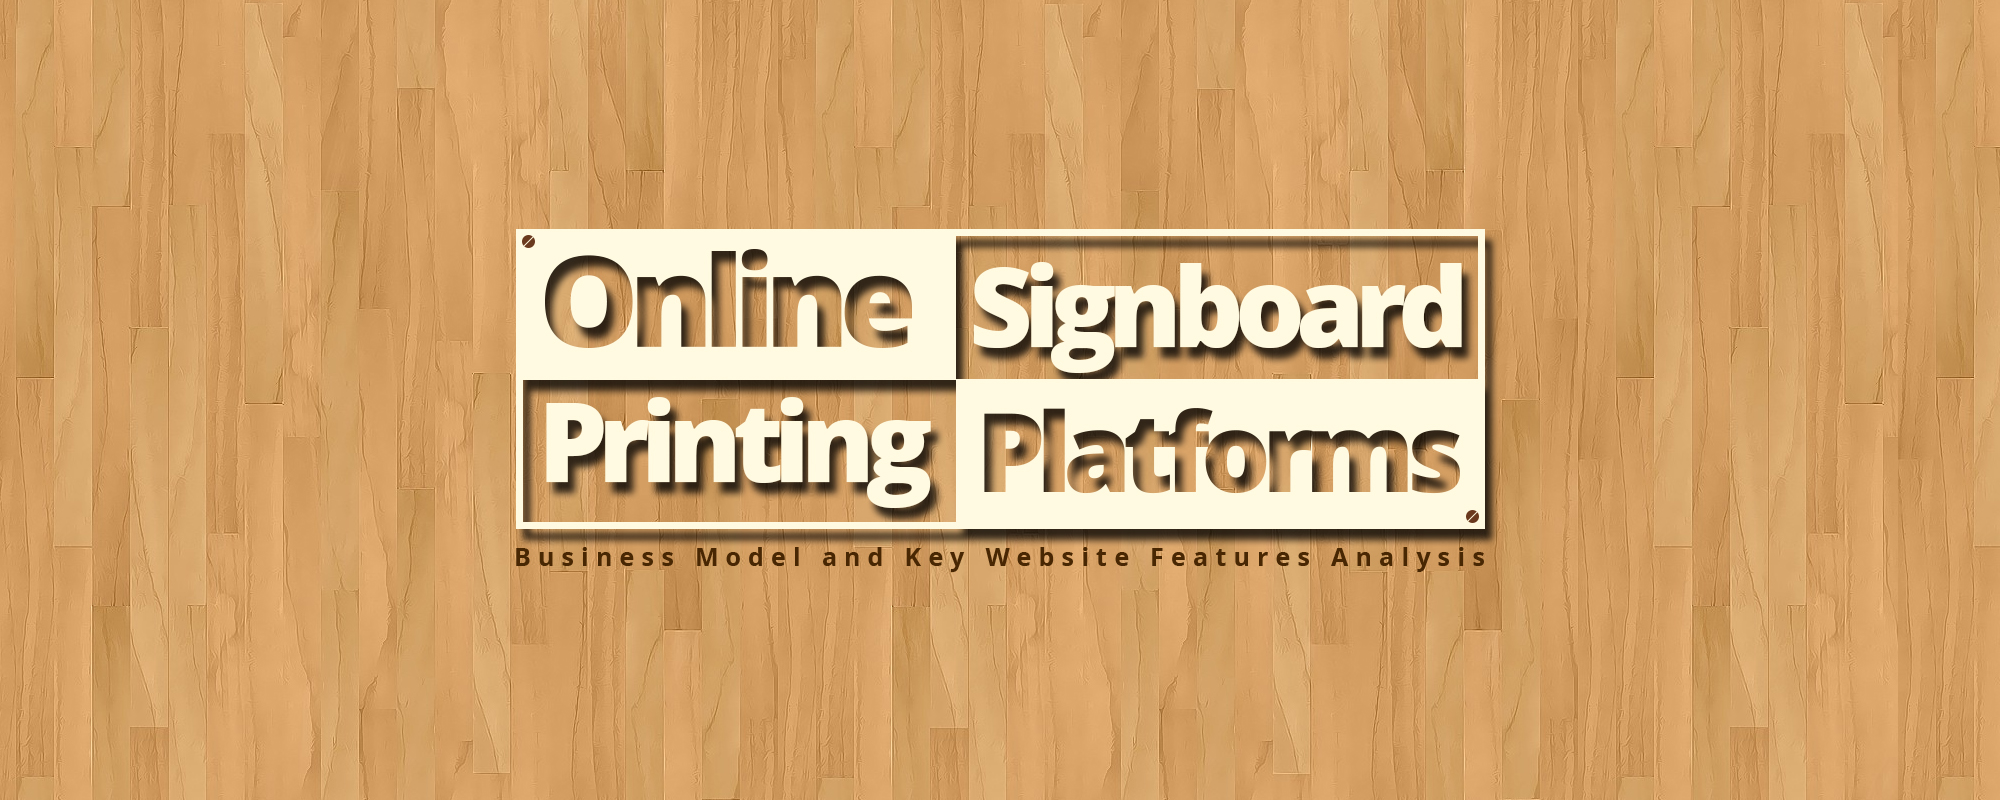 Online Signboard Printing Platforms Have a Bright Future – Key Website Features Analysis